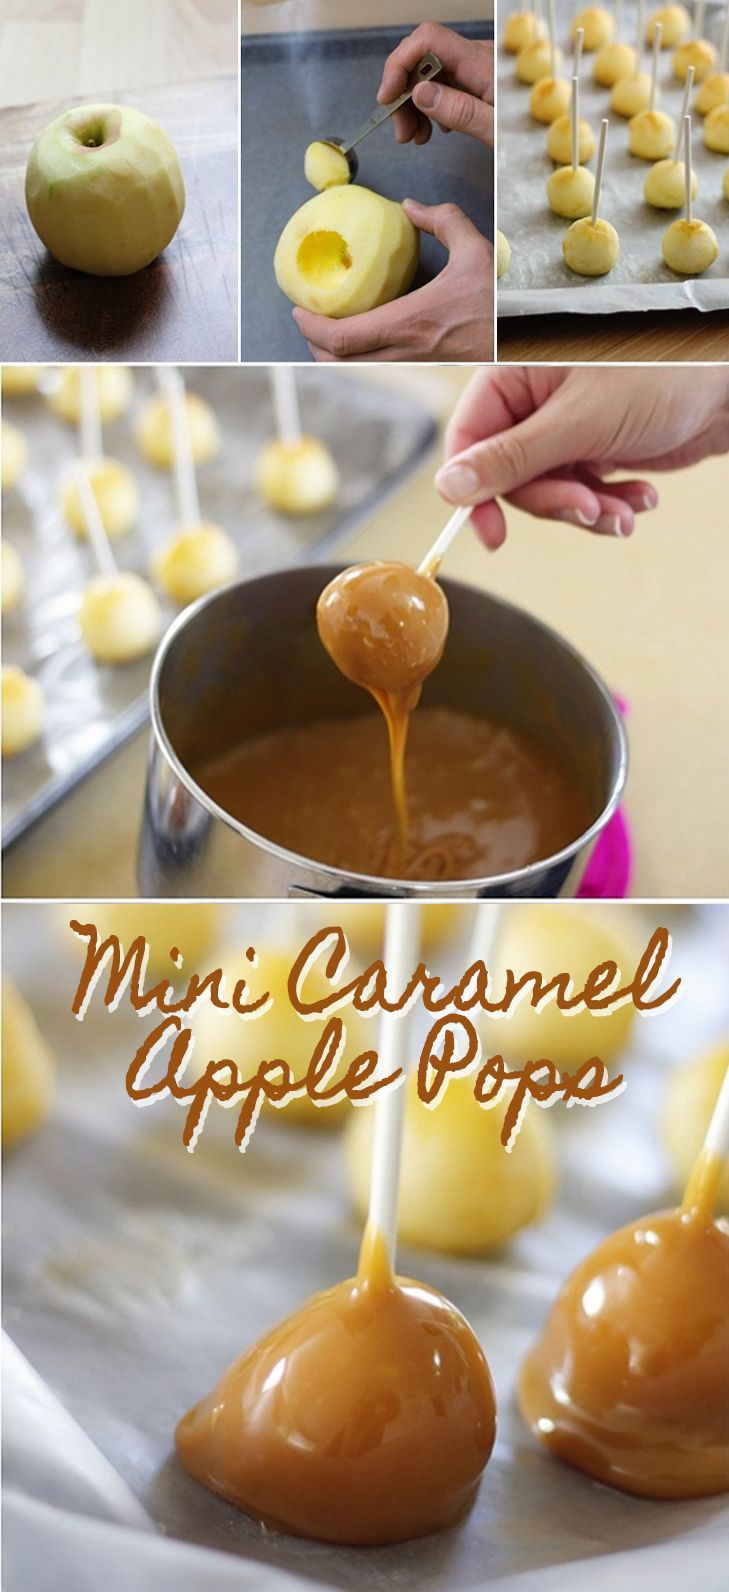 Christmas Party Appetizer Ideas Part - 33: Mini Caramel Apple Pops Recipe | Christmas Party Appetizer Ideas! | # Appetizers #CleanEating